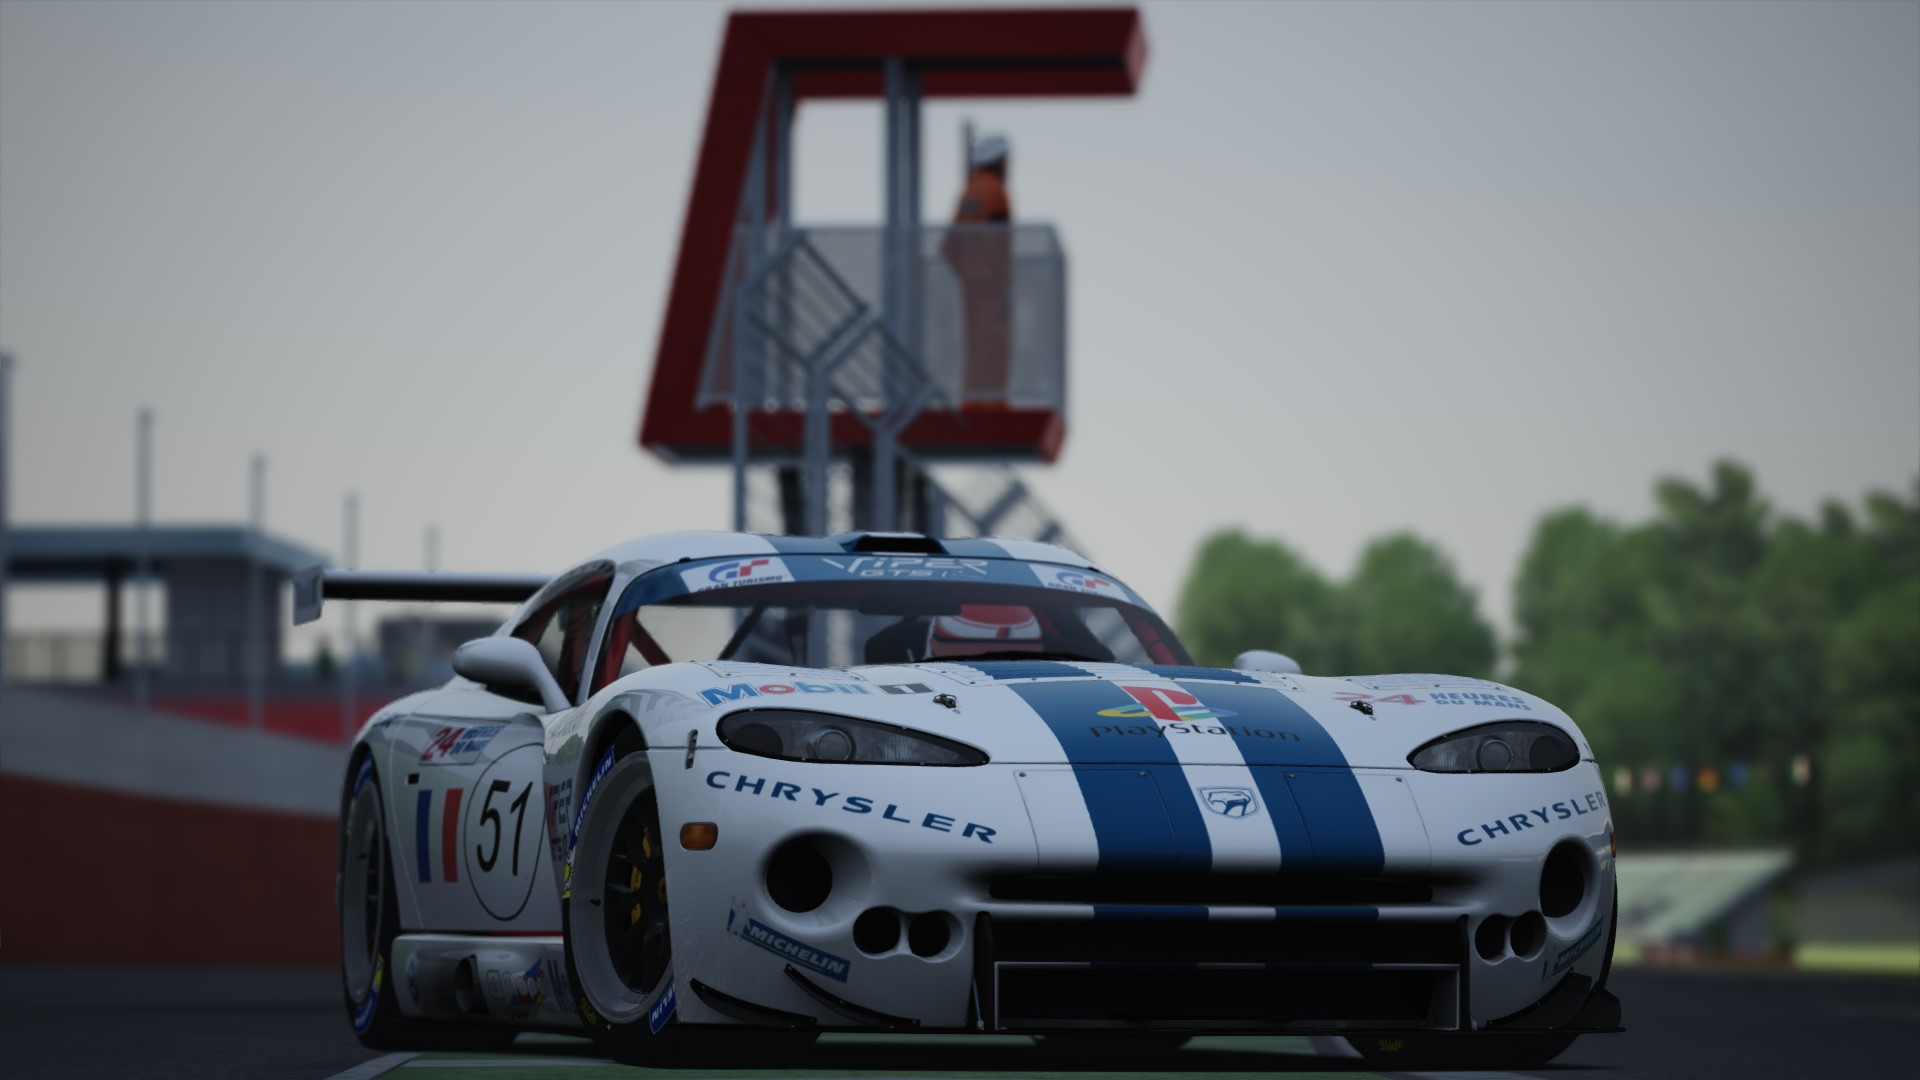 Screenshot_rss_gt_vortex_v10_imola_28-12-117-0-39-12.jpg